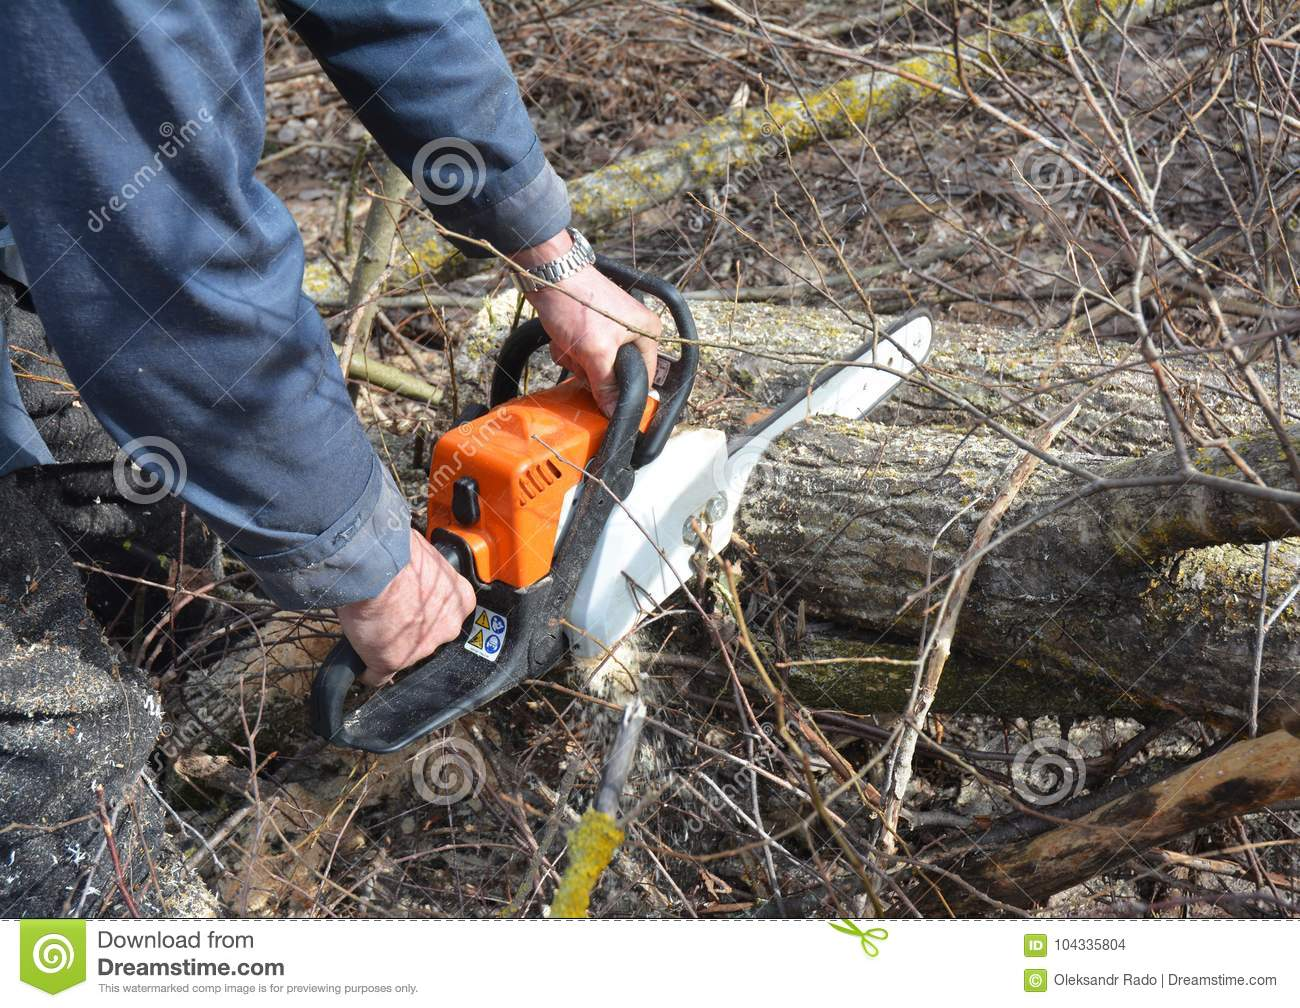 Worker with Petrol Chainsaw in Forest. Tree Cutting Saw. Man with Gasoline Petrol Chain Saw Tree Cutting Outdoor.